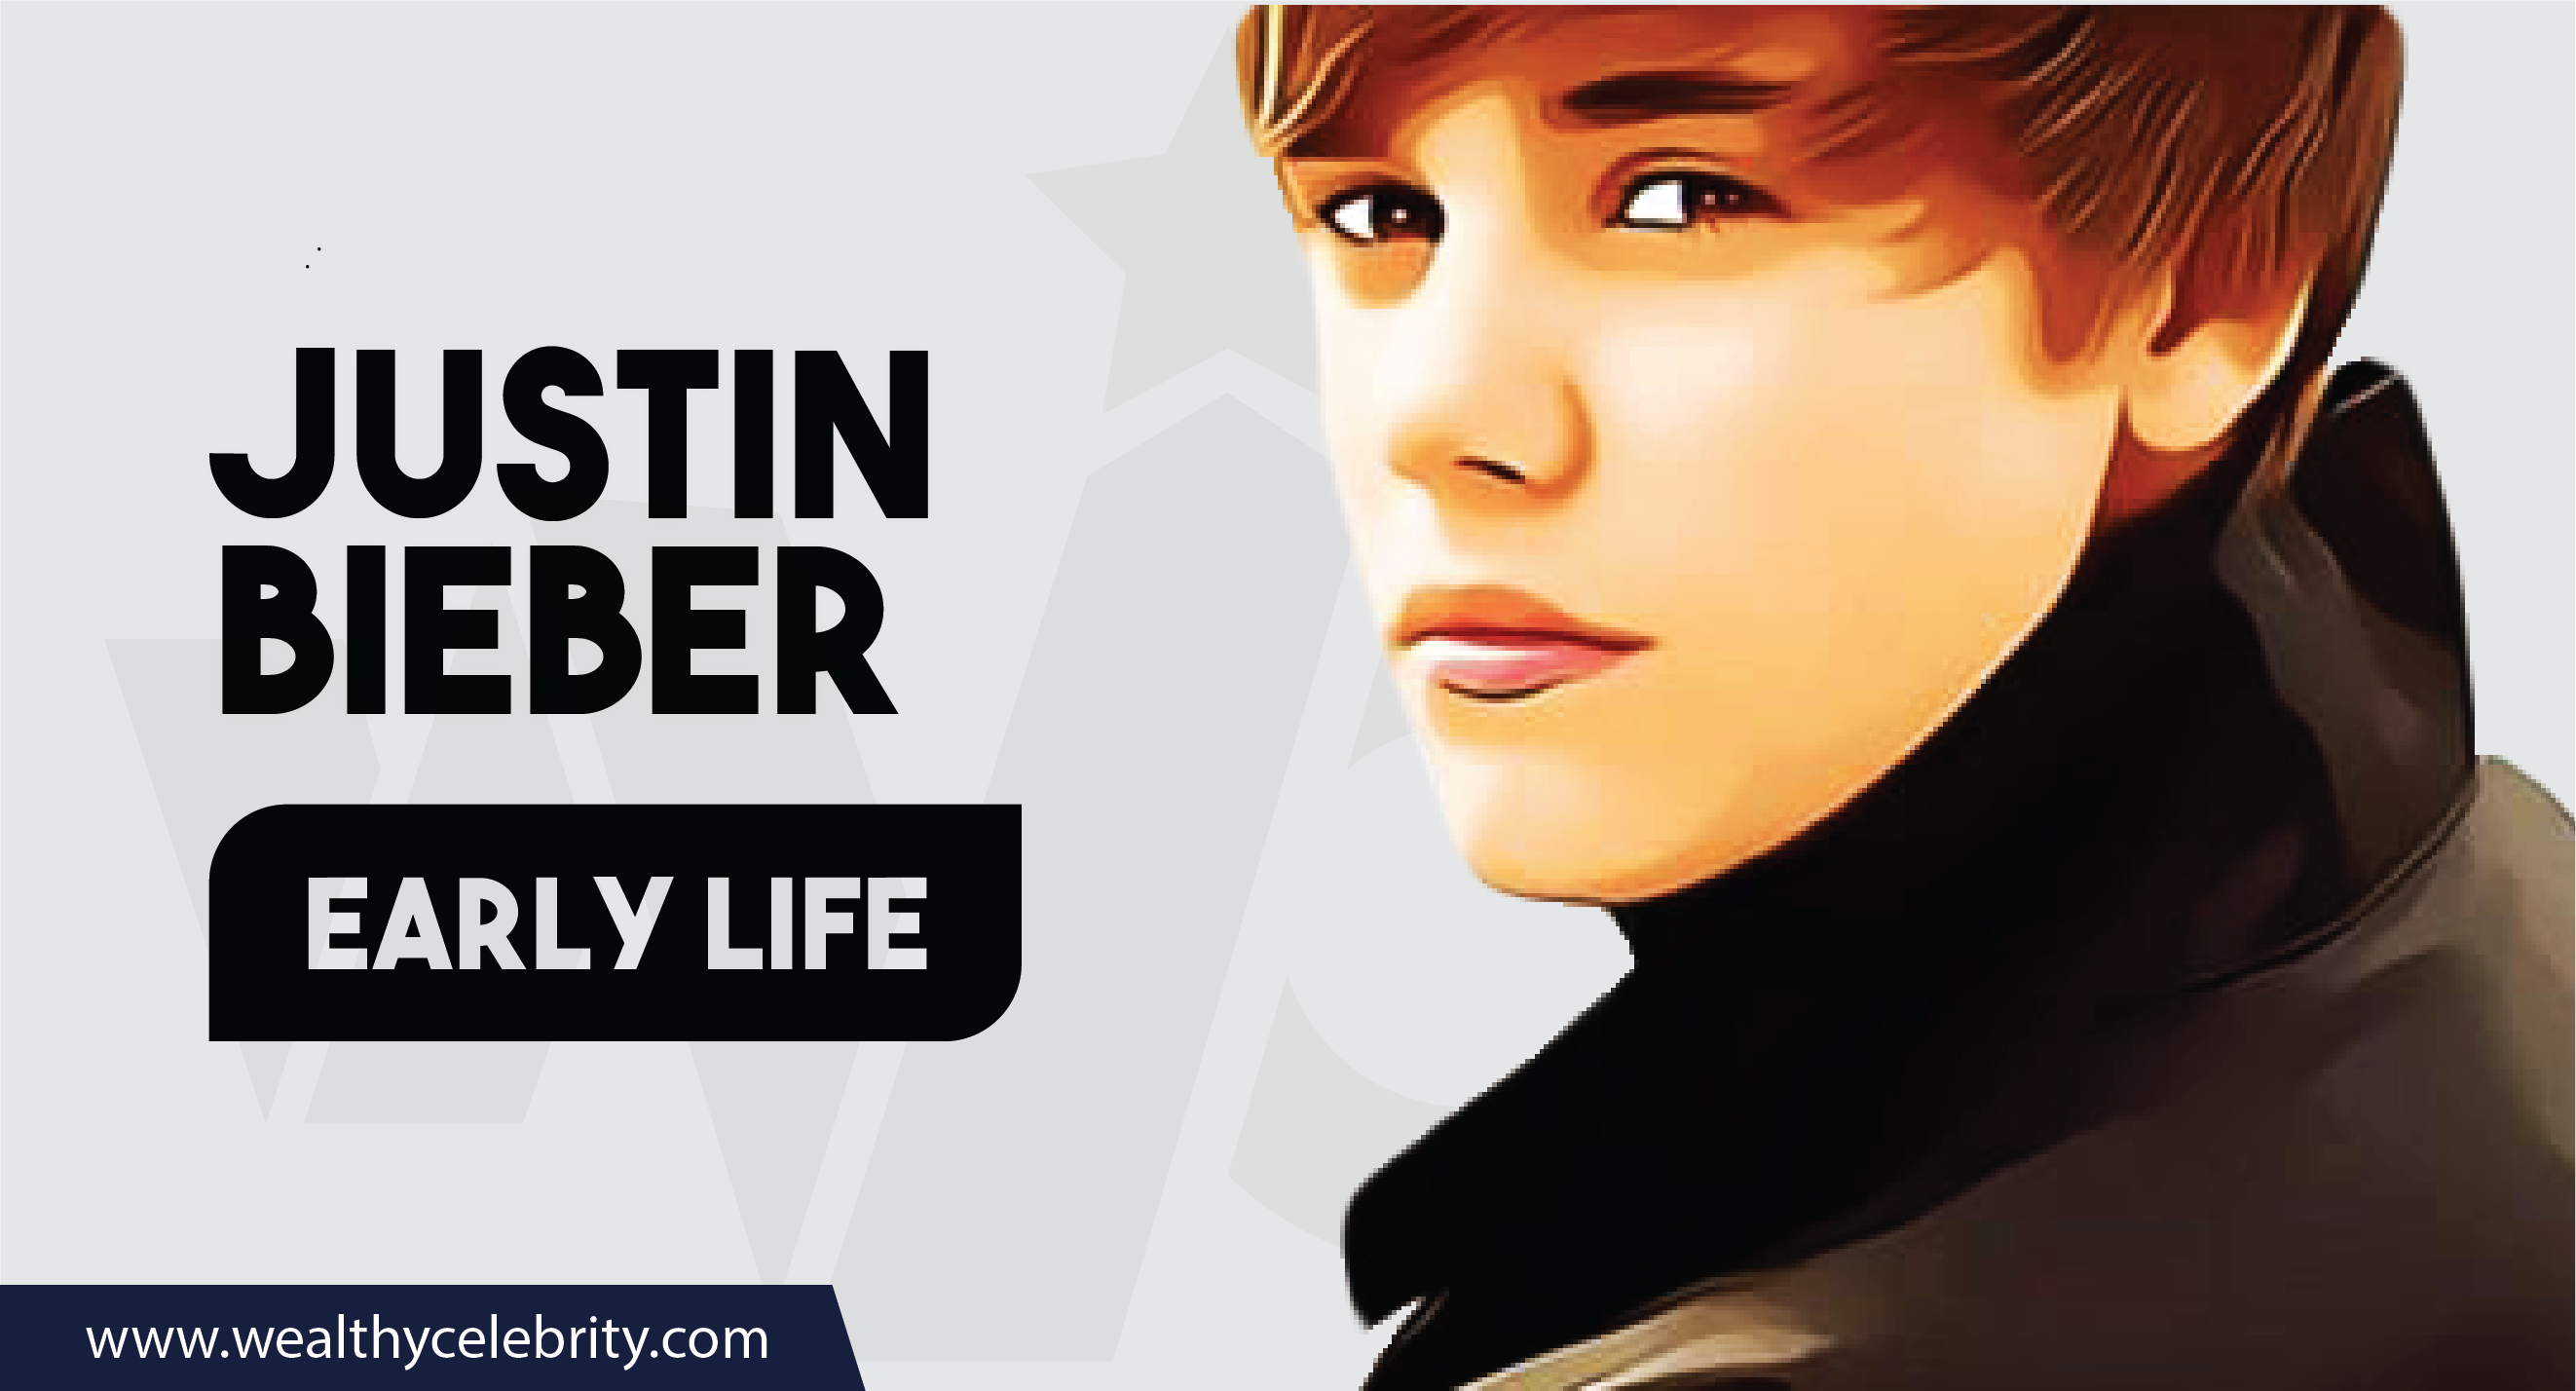 Justin Bieber_Early Life